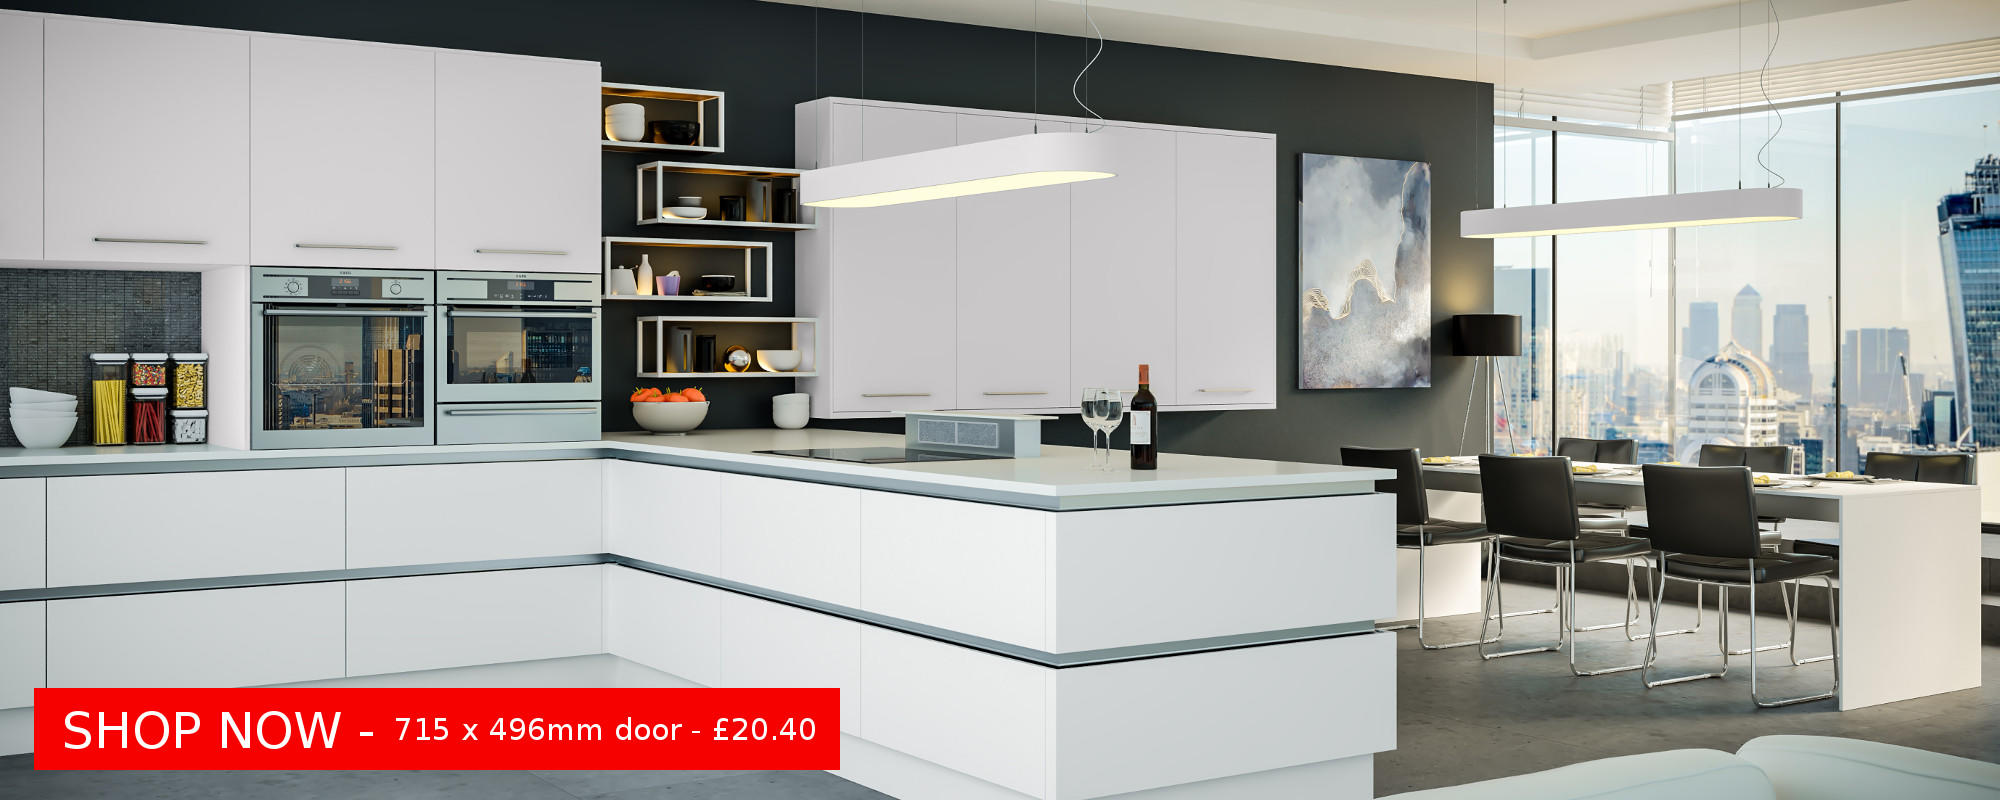 Firbeck Supermatt White - A stunning modern door